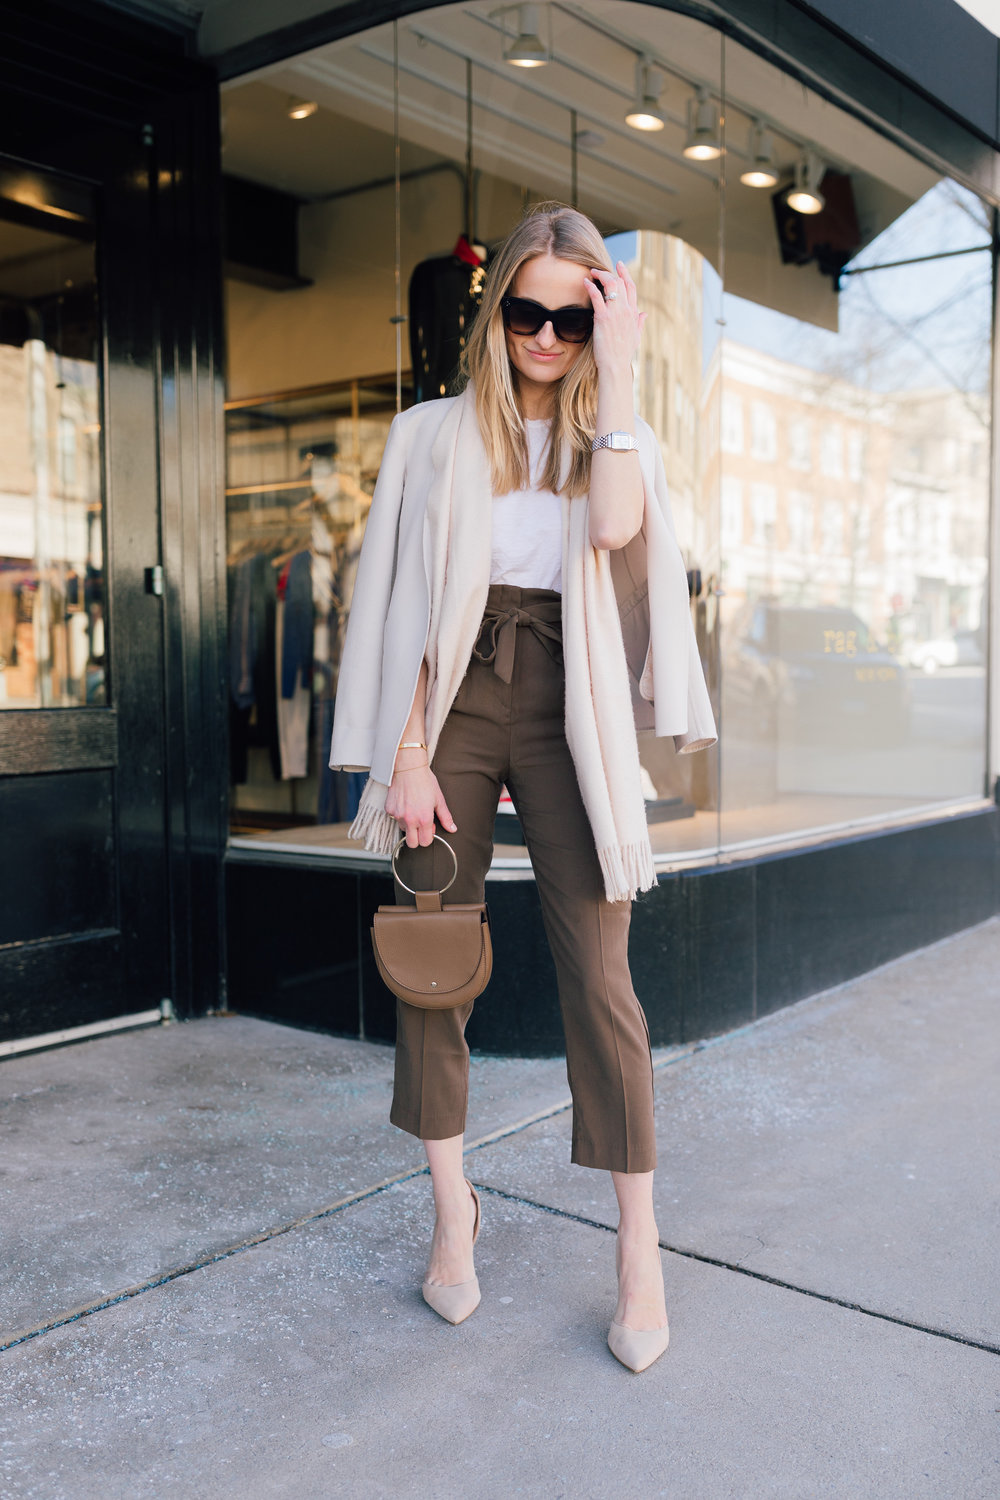 Stephanie Trotta of The Girl Guide wearing a paper bag pant street style for work wear with a neutral blazer and scarf